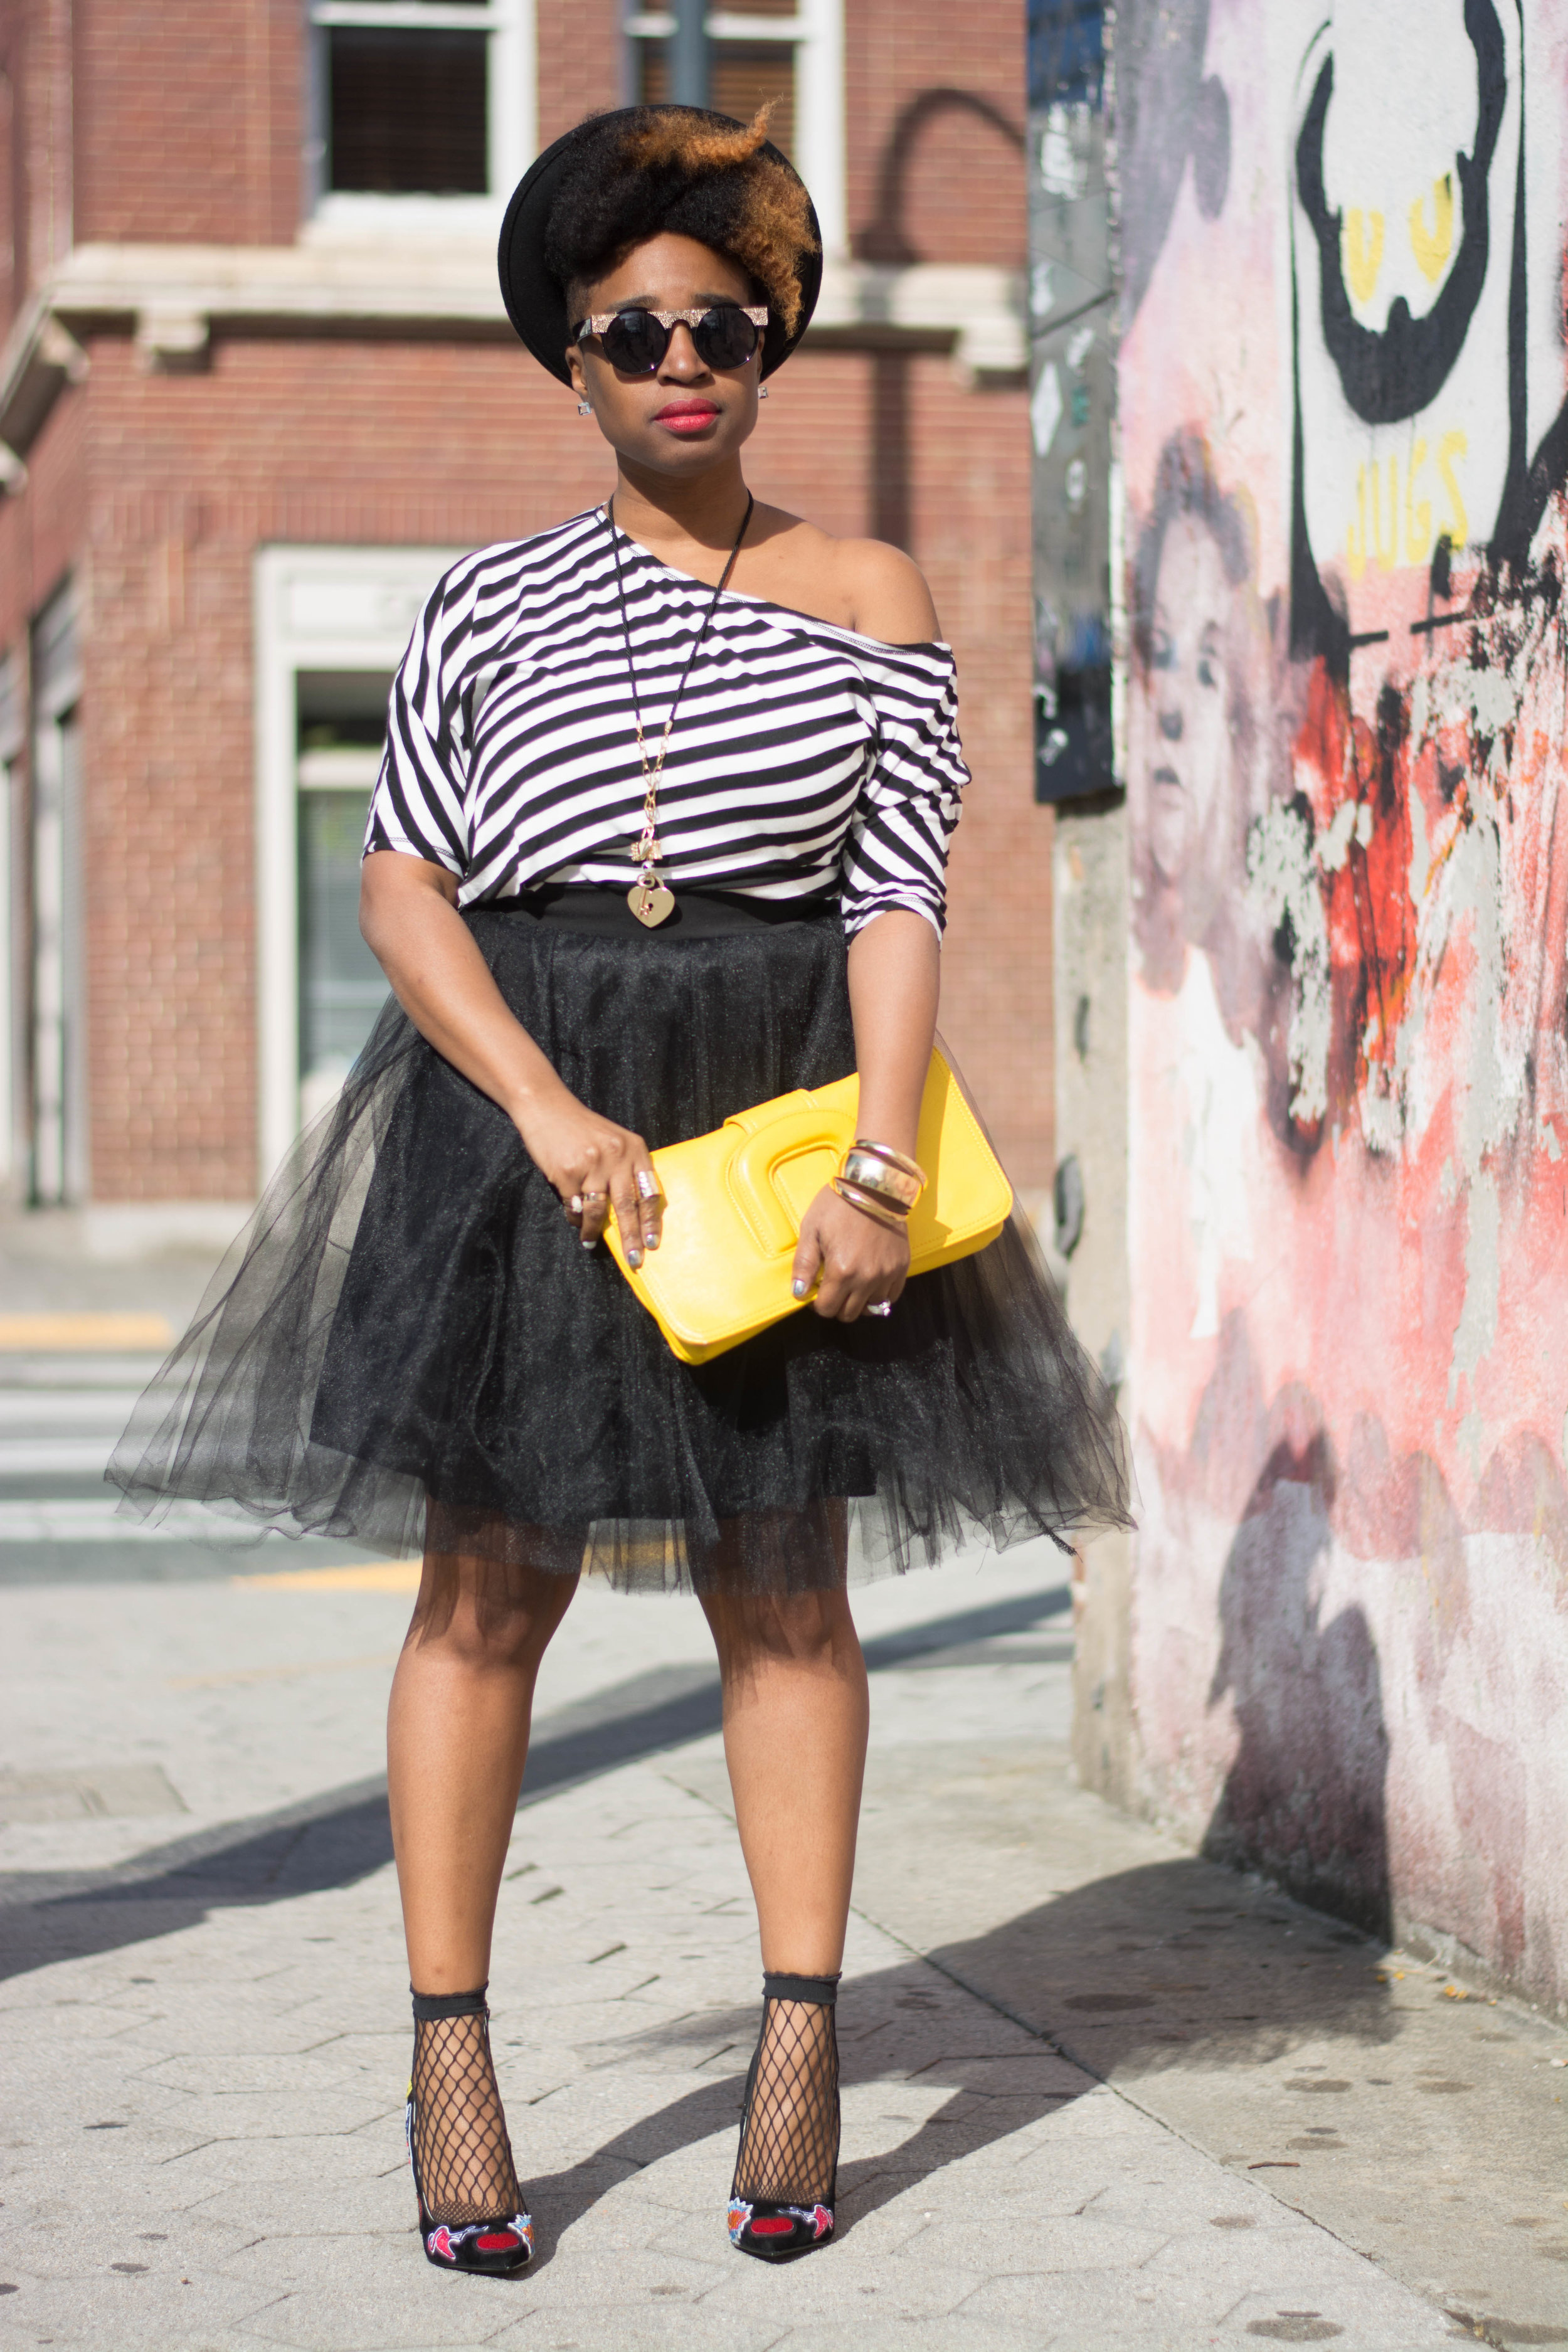 Melodie Stewart, The Style Klazit, Tulle skirt, off the shoulder top, patch heels, Atlanta style blogger, fishnet socks